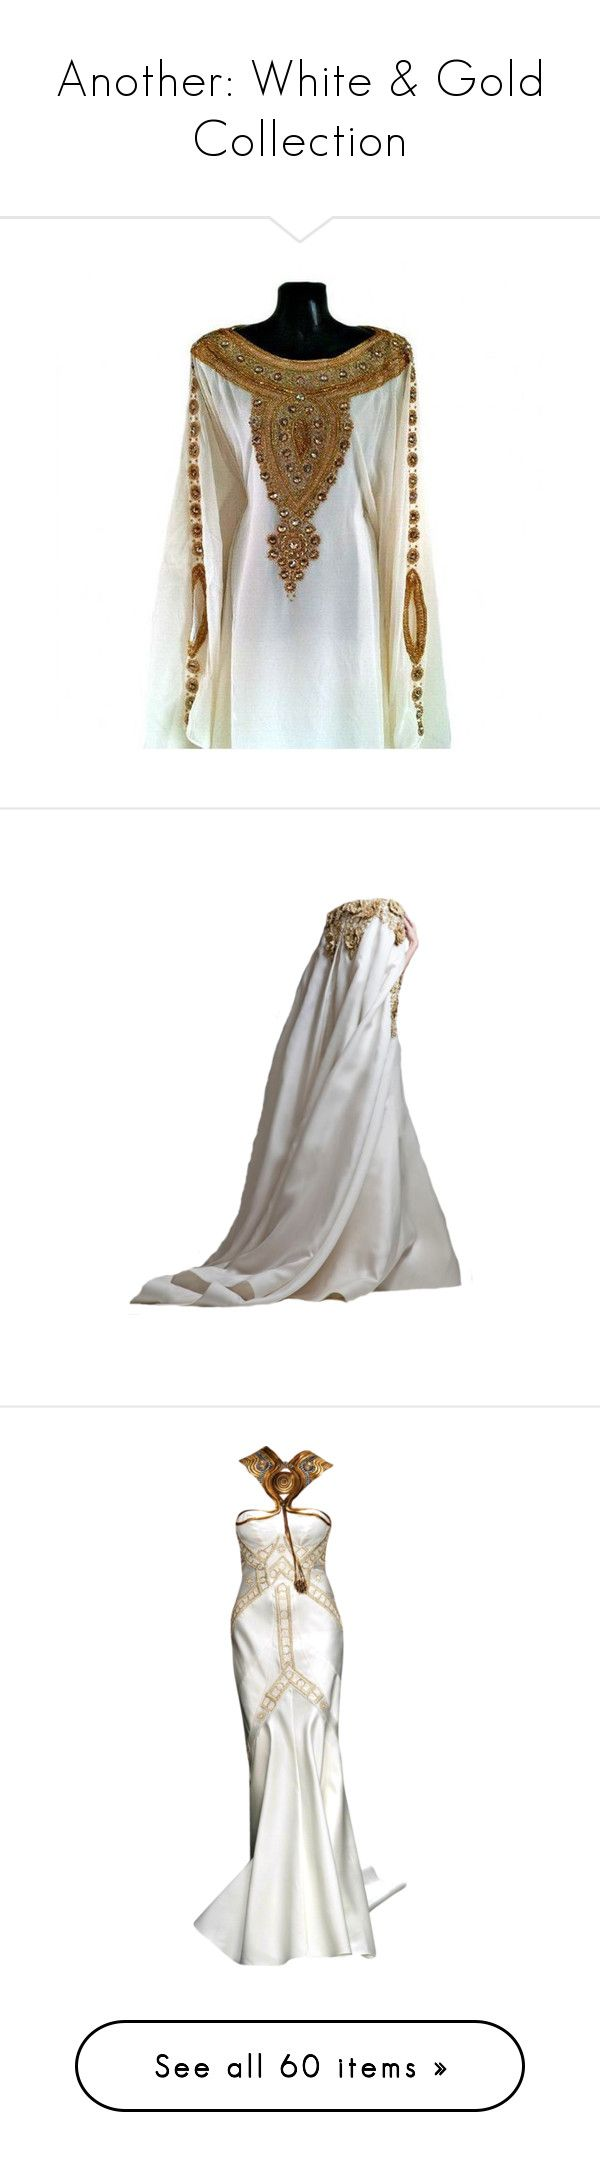 """""""Another: White & Gold Collection"""" by nikki-kersey ❤ liked on Polyvore featuring tops, tunics, abaya kaftan, long white tunic, long kaftan, long sleeve tunic, embellished tunic, dolls, dresses and gowns"""